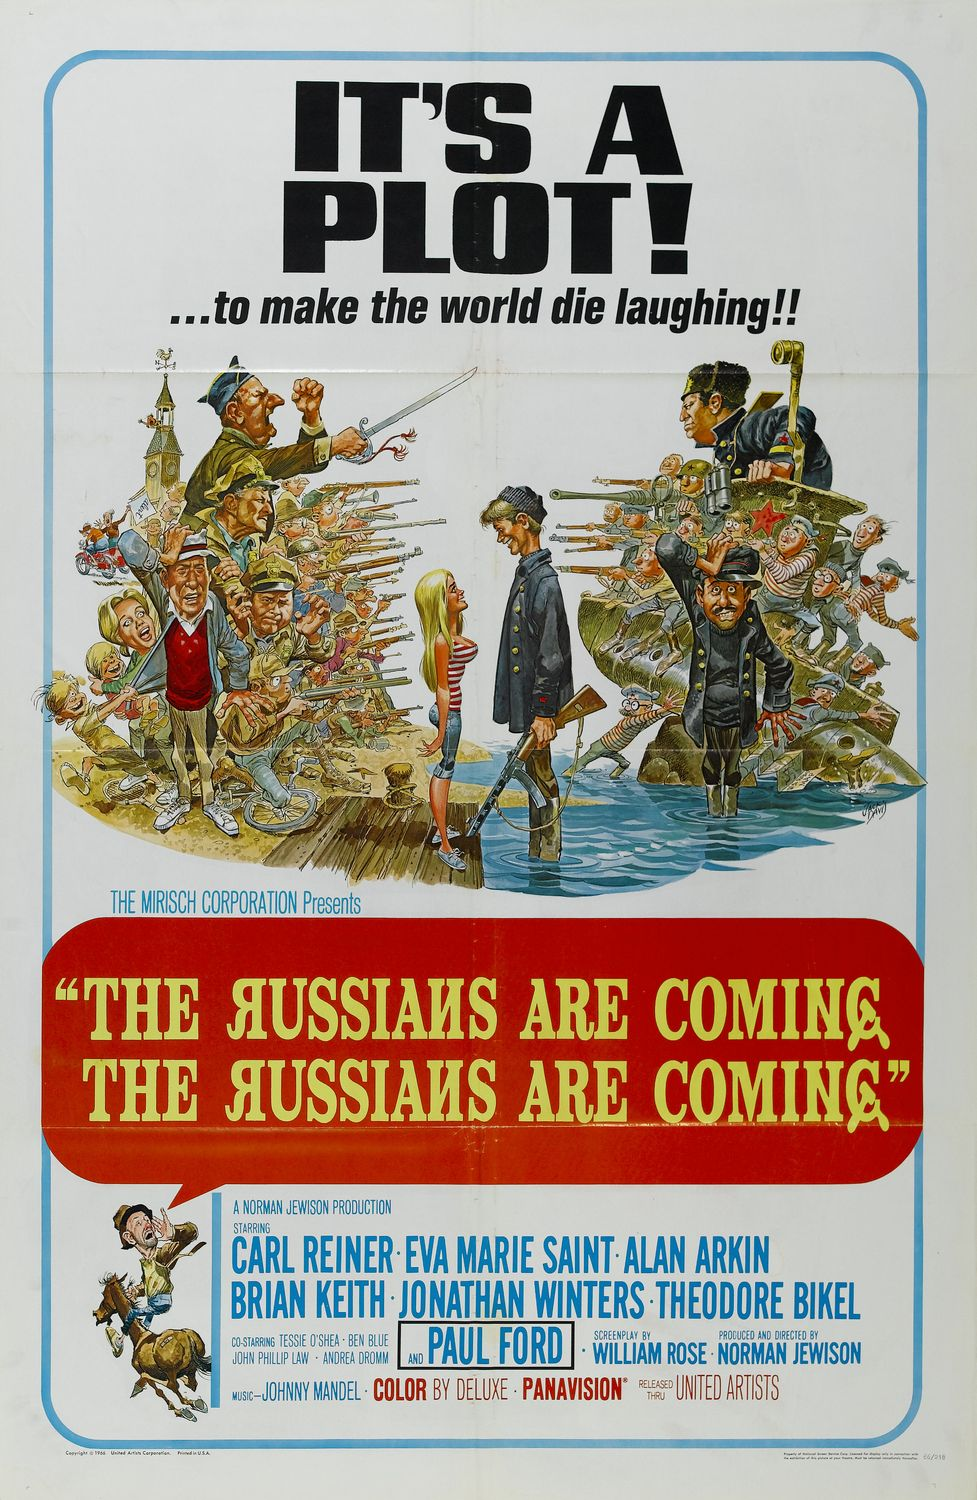 """S1 E11 """"Egermency! EGermency!"""" - Russian invaders, American freakouts, and panic in the streets. Nope, it's not Twitter: It's 1966's The Russians Are Coming, the Russians Are Coming, and it's Daniel's first time seeing this classic Cold War satire. We talk about the genius physical comedy of Carl Reiner and Jonathan Winters, the brilliance of Alan Arkin (in his first movie!), and why Tracy still has a crush on Brian Keith. Get organized and listen now!Listen and subscribe here."""